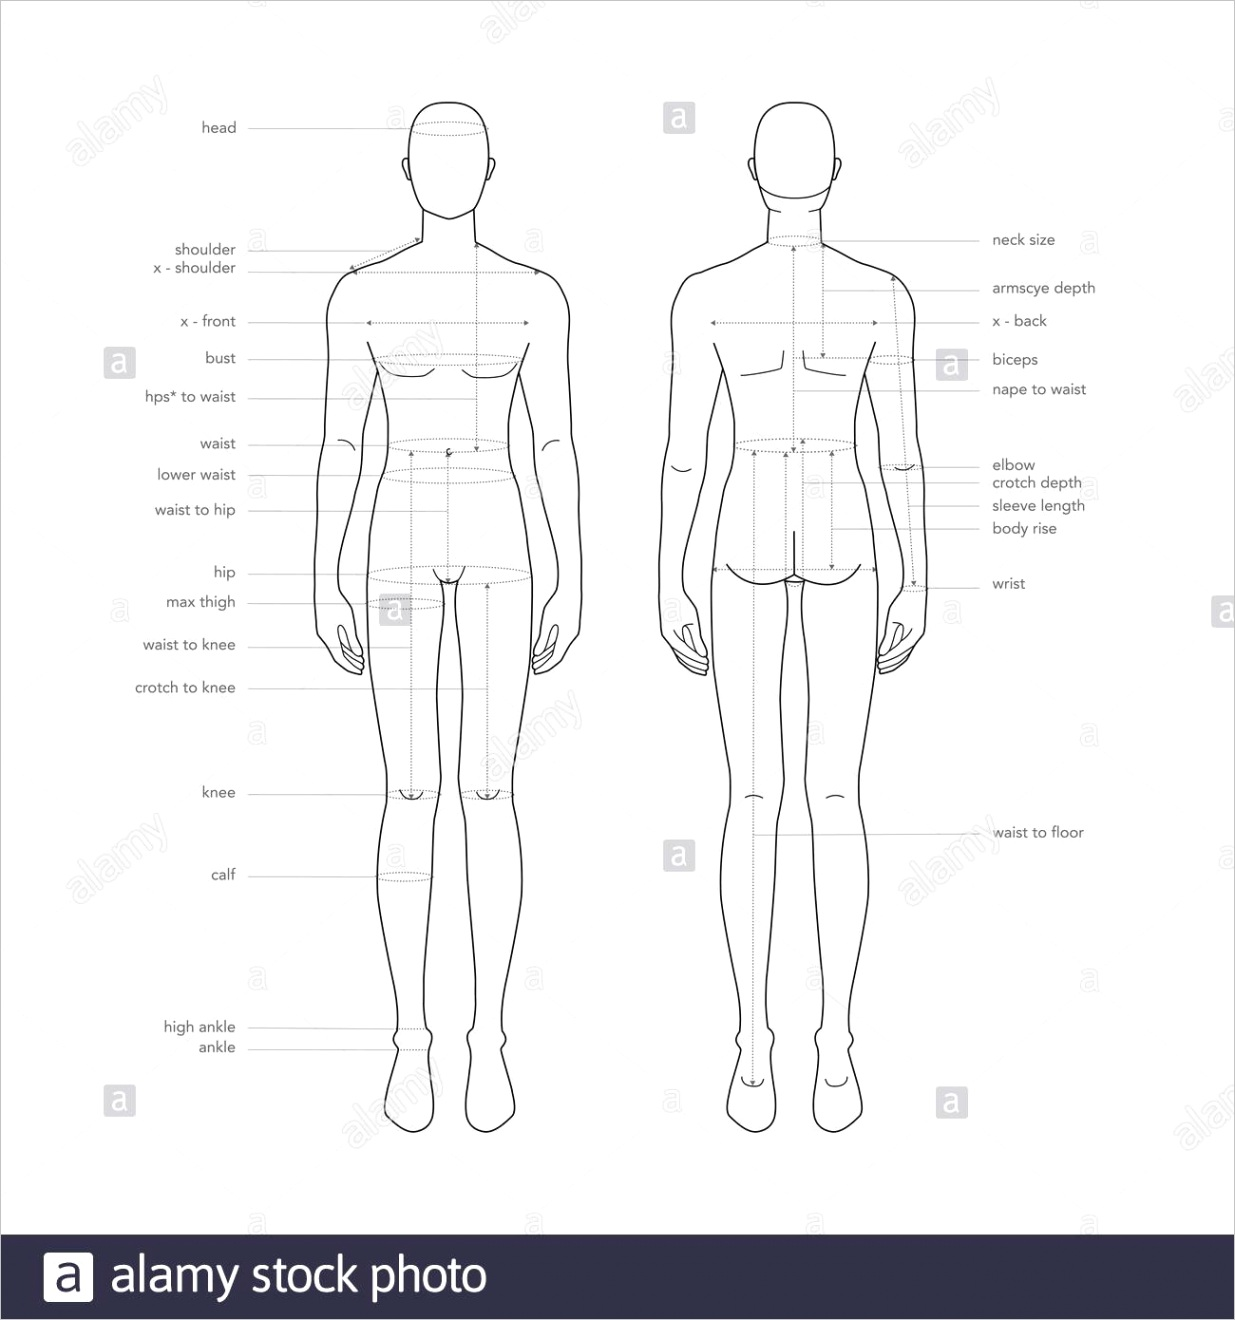 men body parts terminology measurements illustration for clothes and accessories production fashion male size chart 9 head boy for site and online shop human body infographic template image